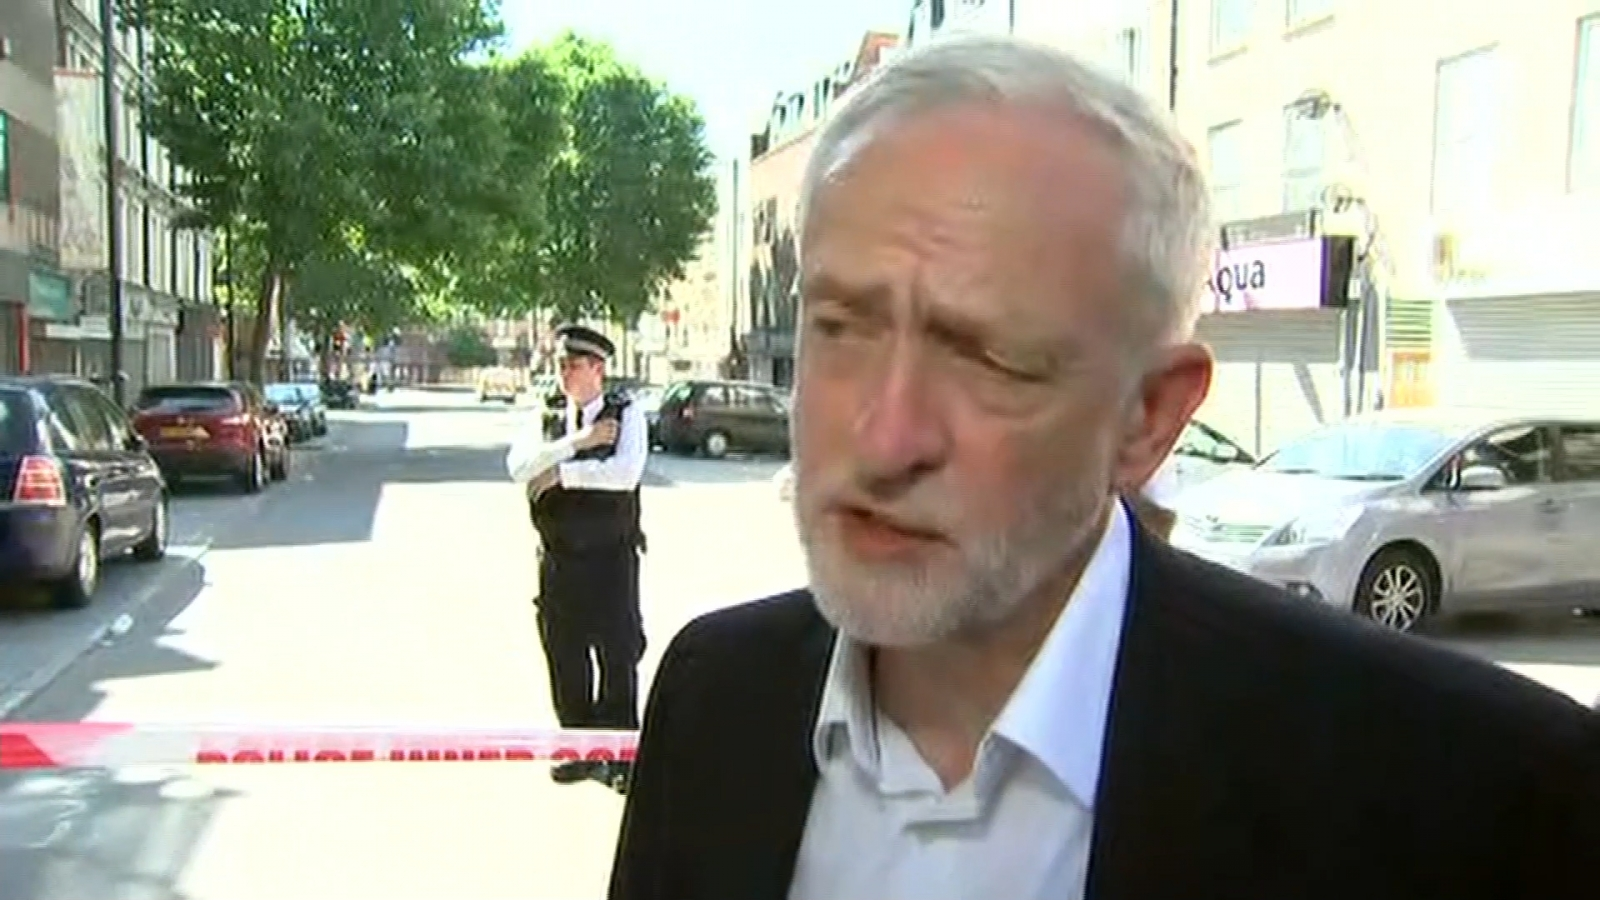 i-feel-their-pain-emotional-jeremy-corbyn-condemns-finsbury-park-mosque-attack